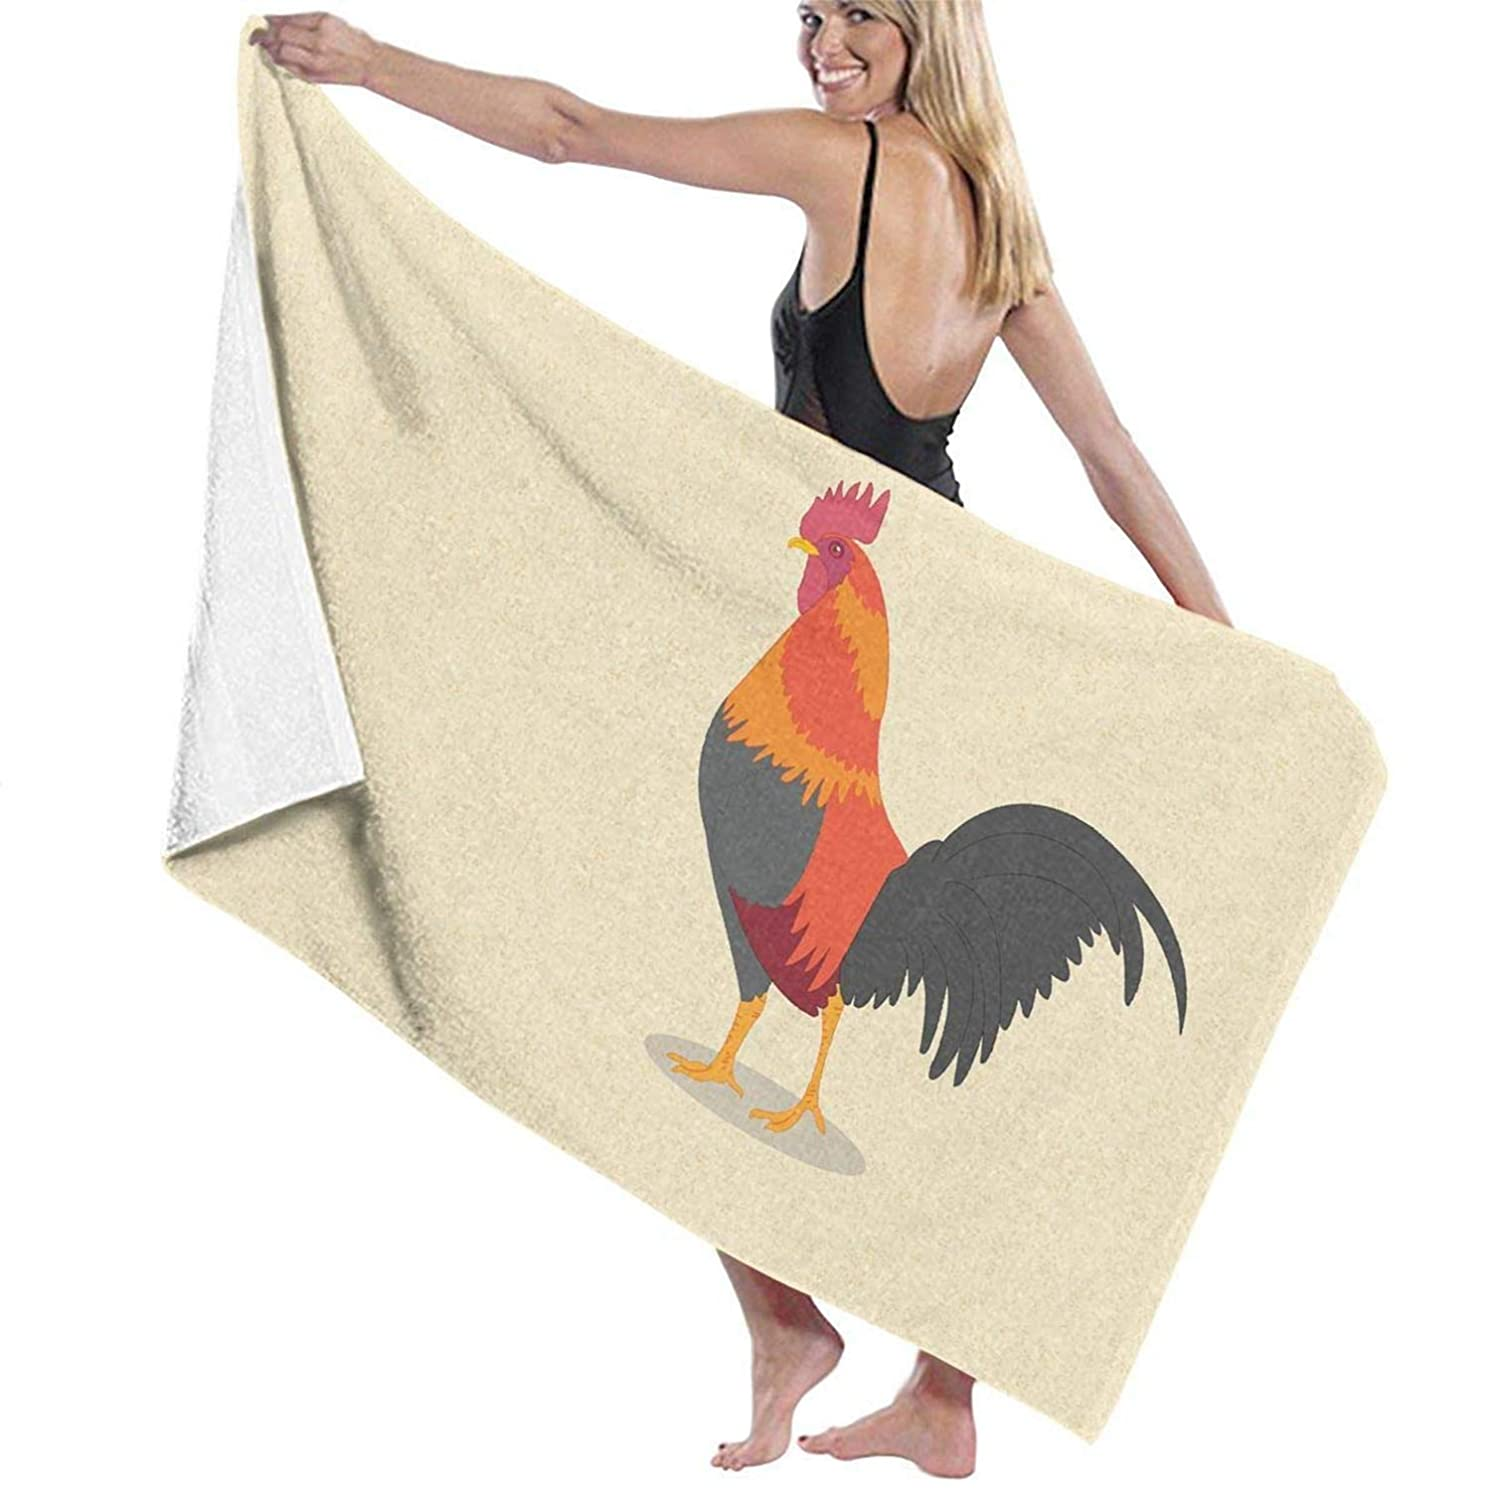 Amazon.com: Weerbar Microfiber Sand Free Beach Towel Blanket ...